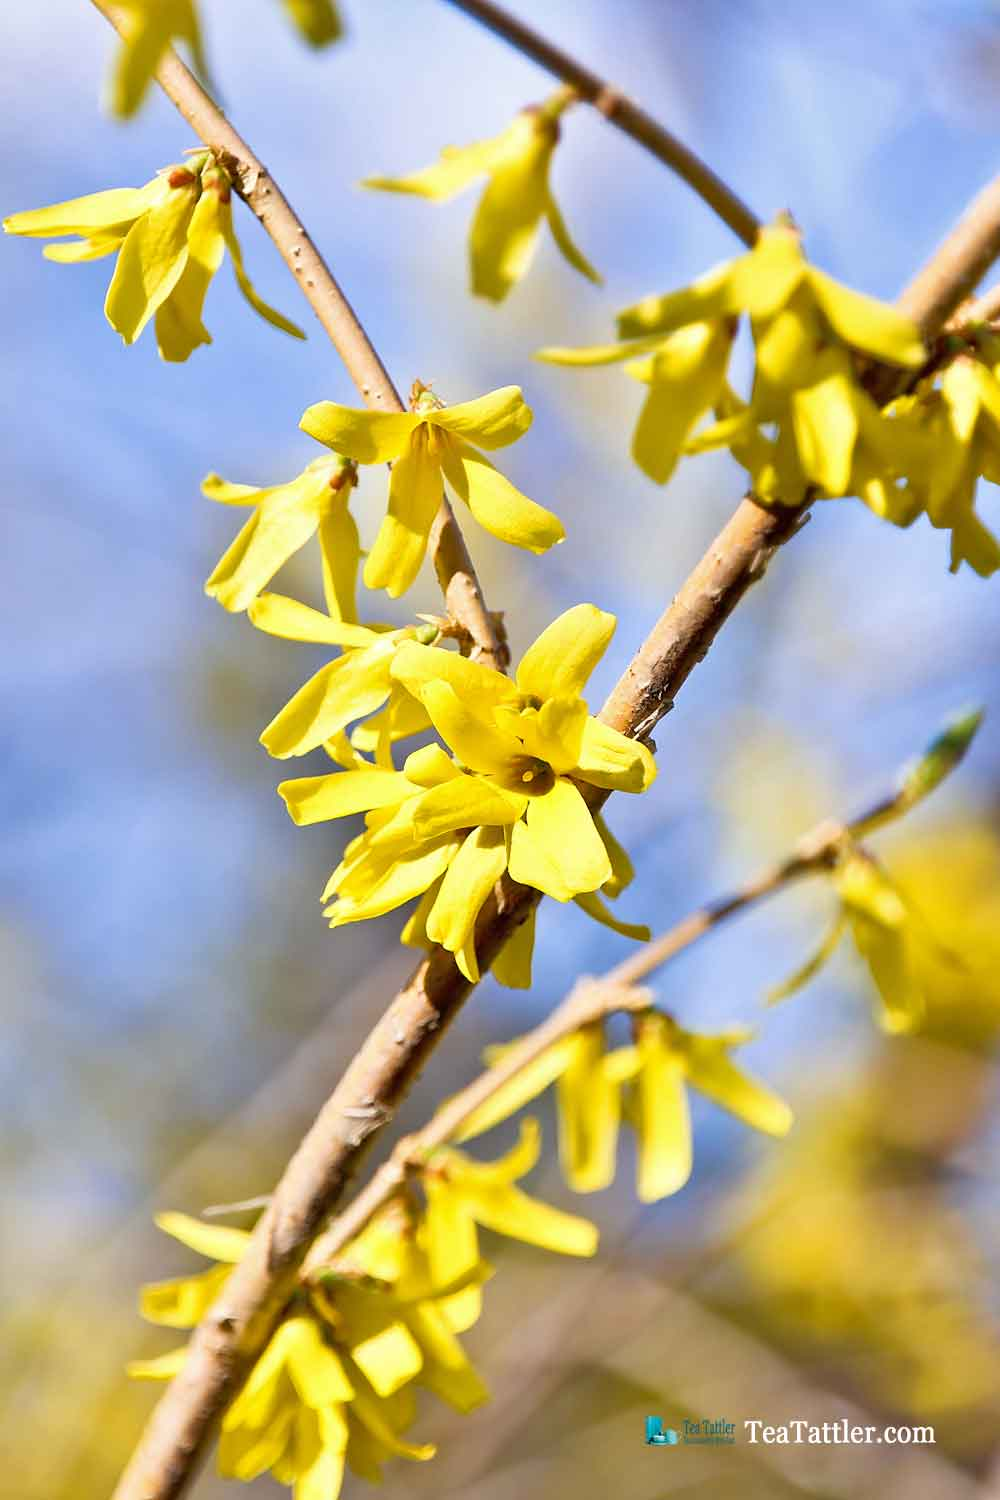 The wonder of Spring in the Prairie with early spring flowers, emerging buds on the trees, and chirping birds. So much to look forward to. | TeaTattler.com #springtime